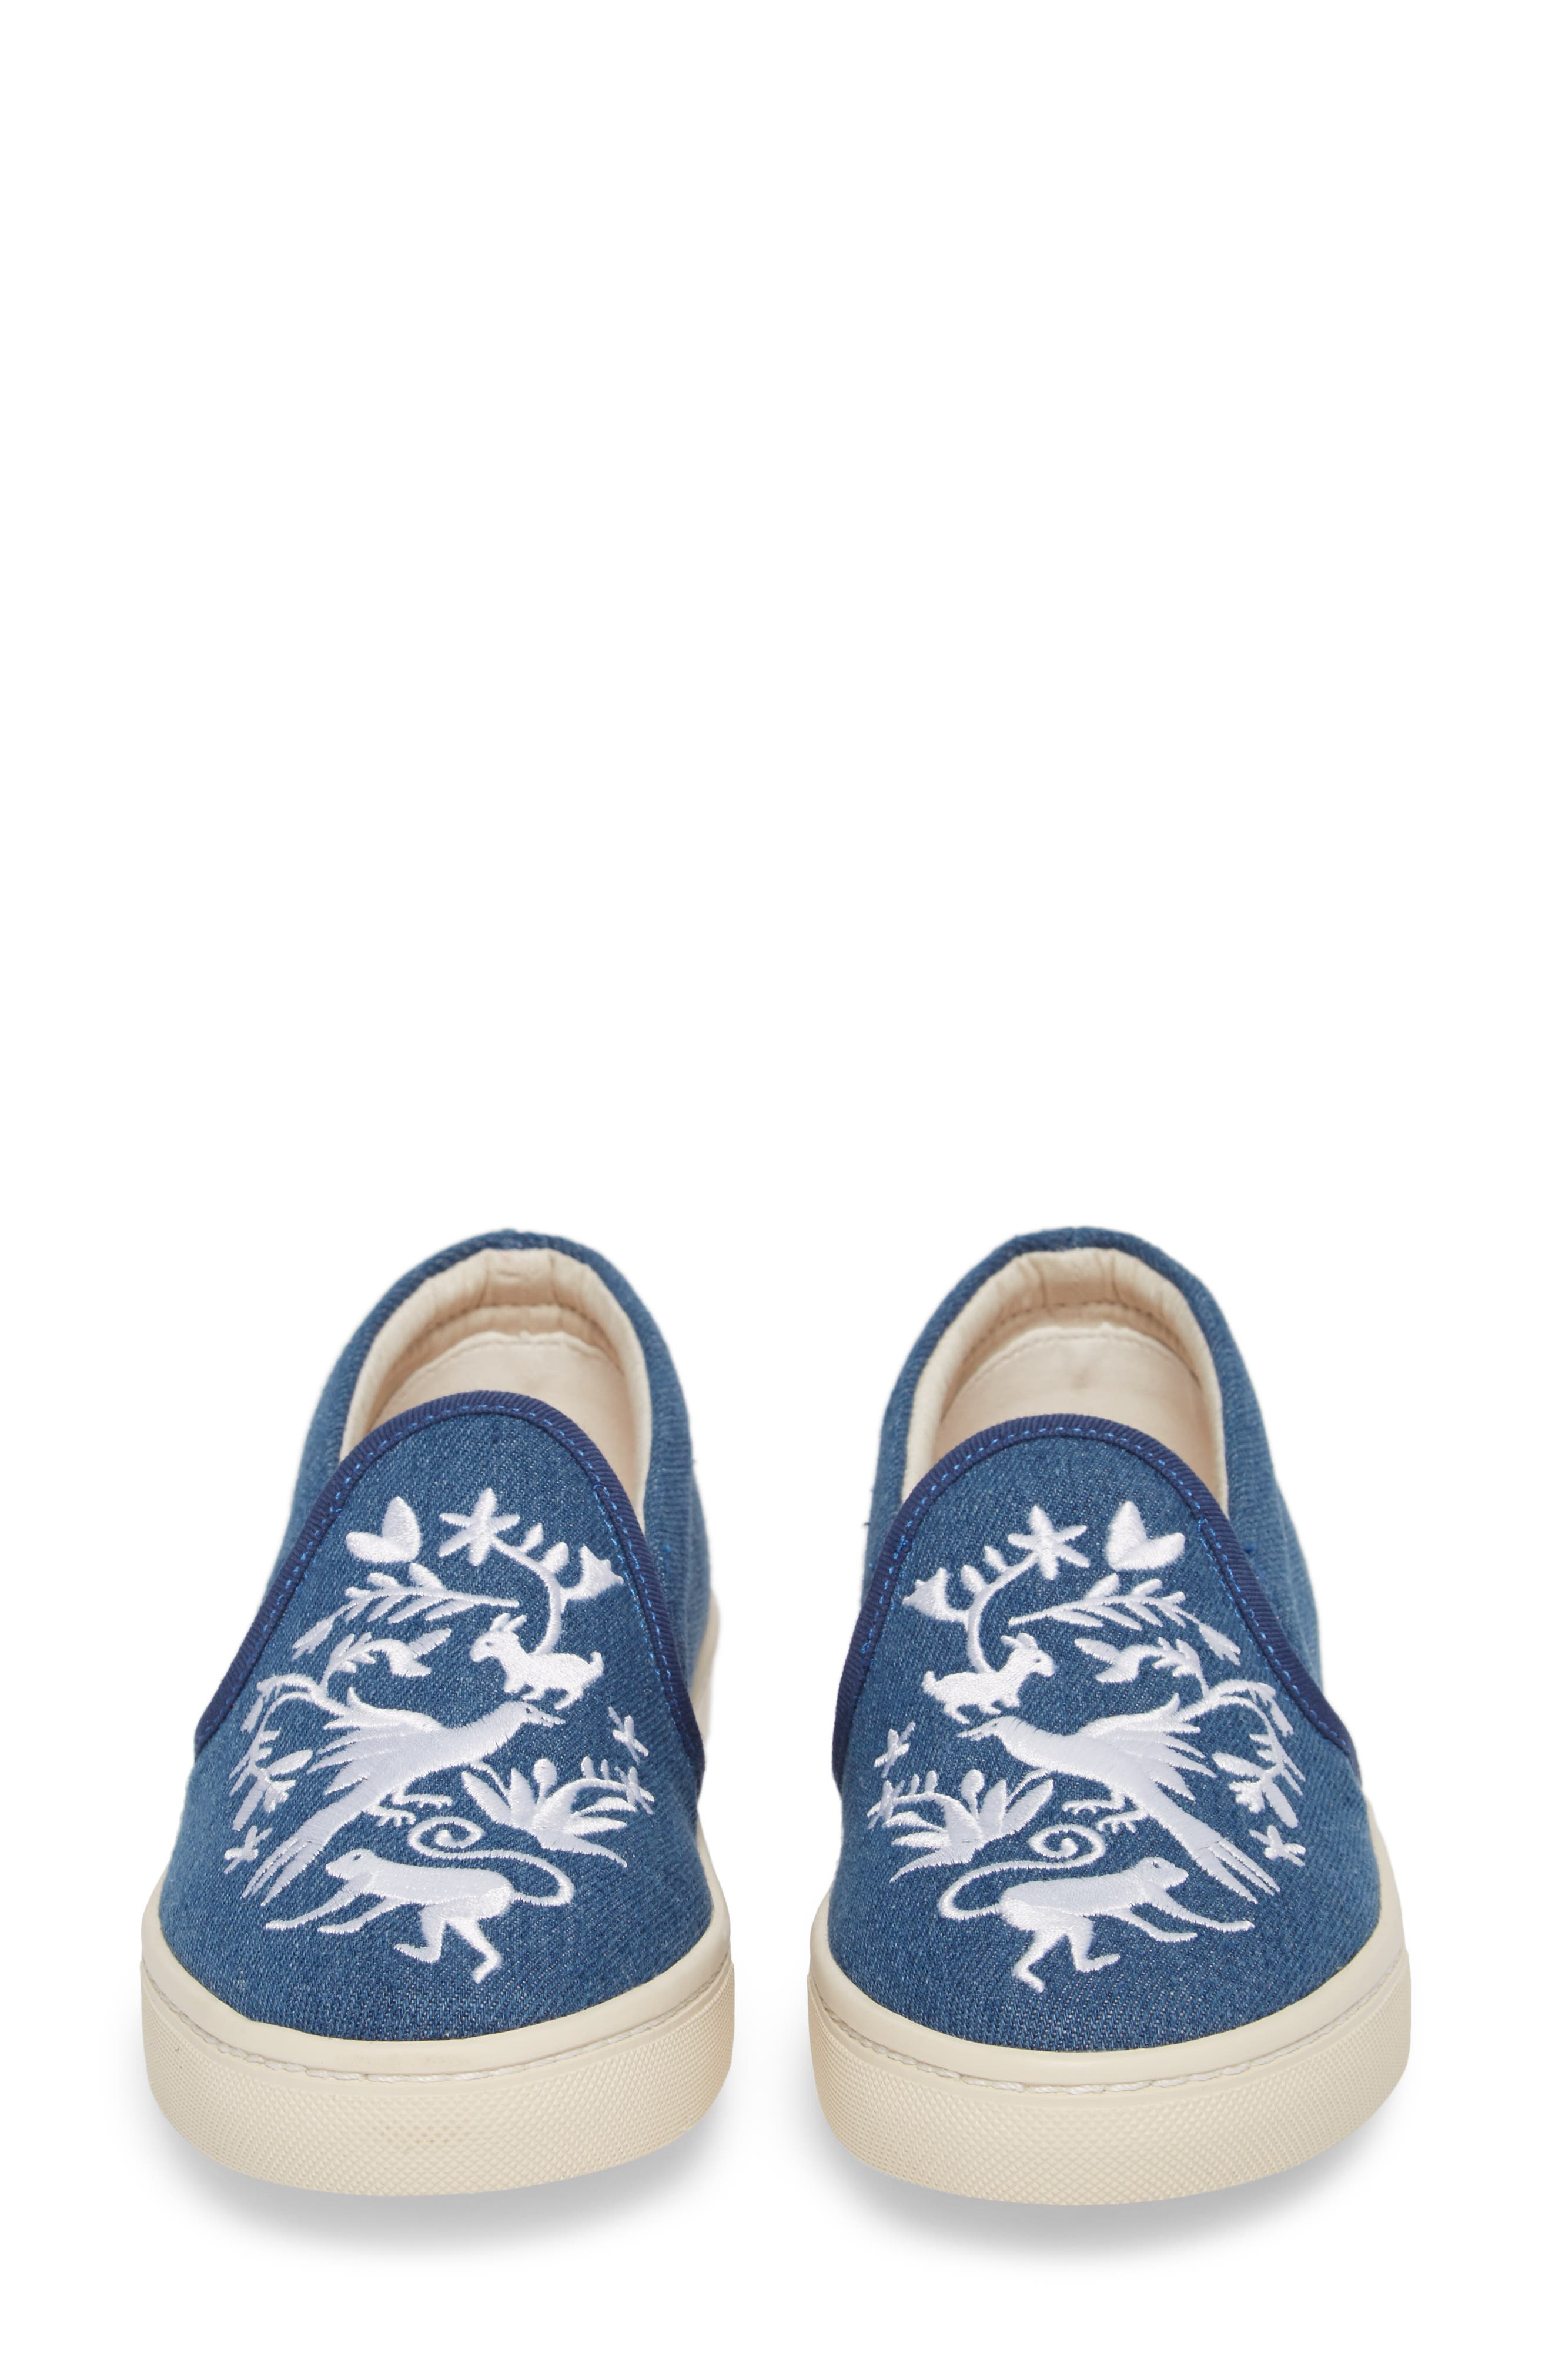 Otomi Slip-On Sneaker,                             Alternate thumbnail 4, color,                             426